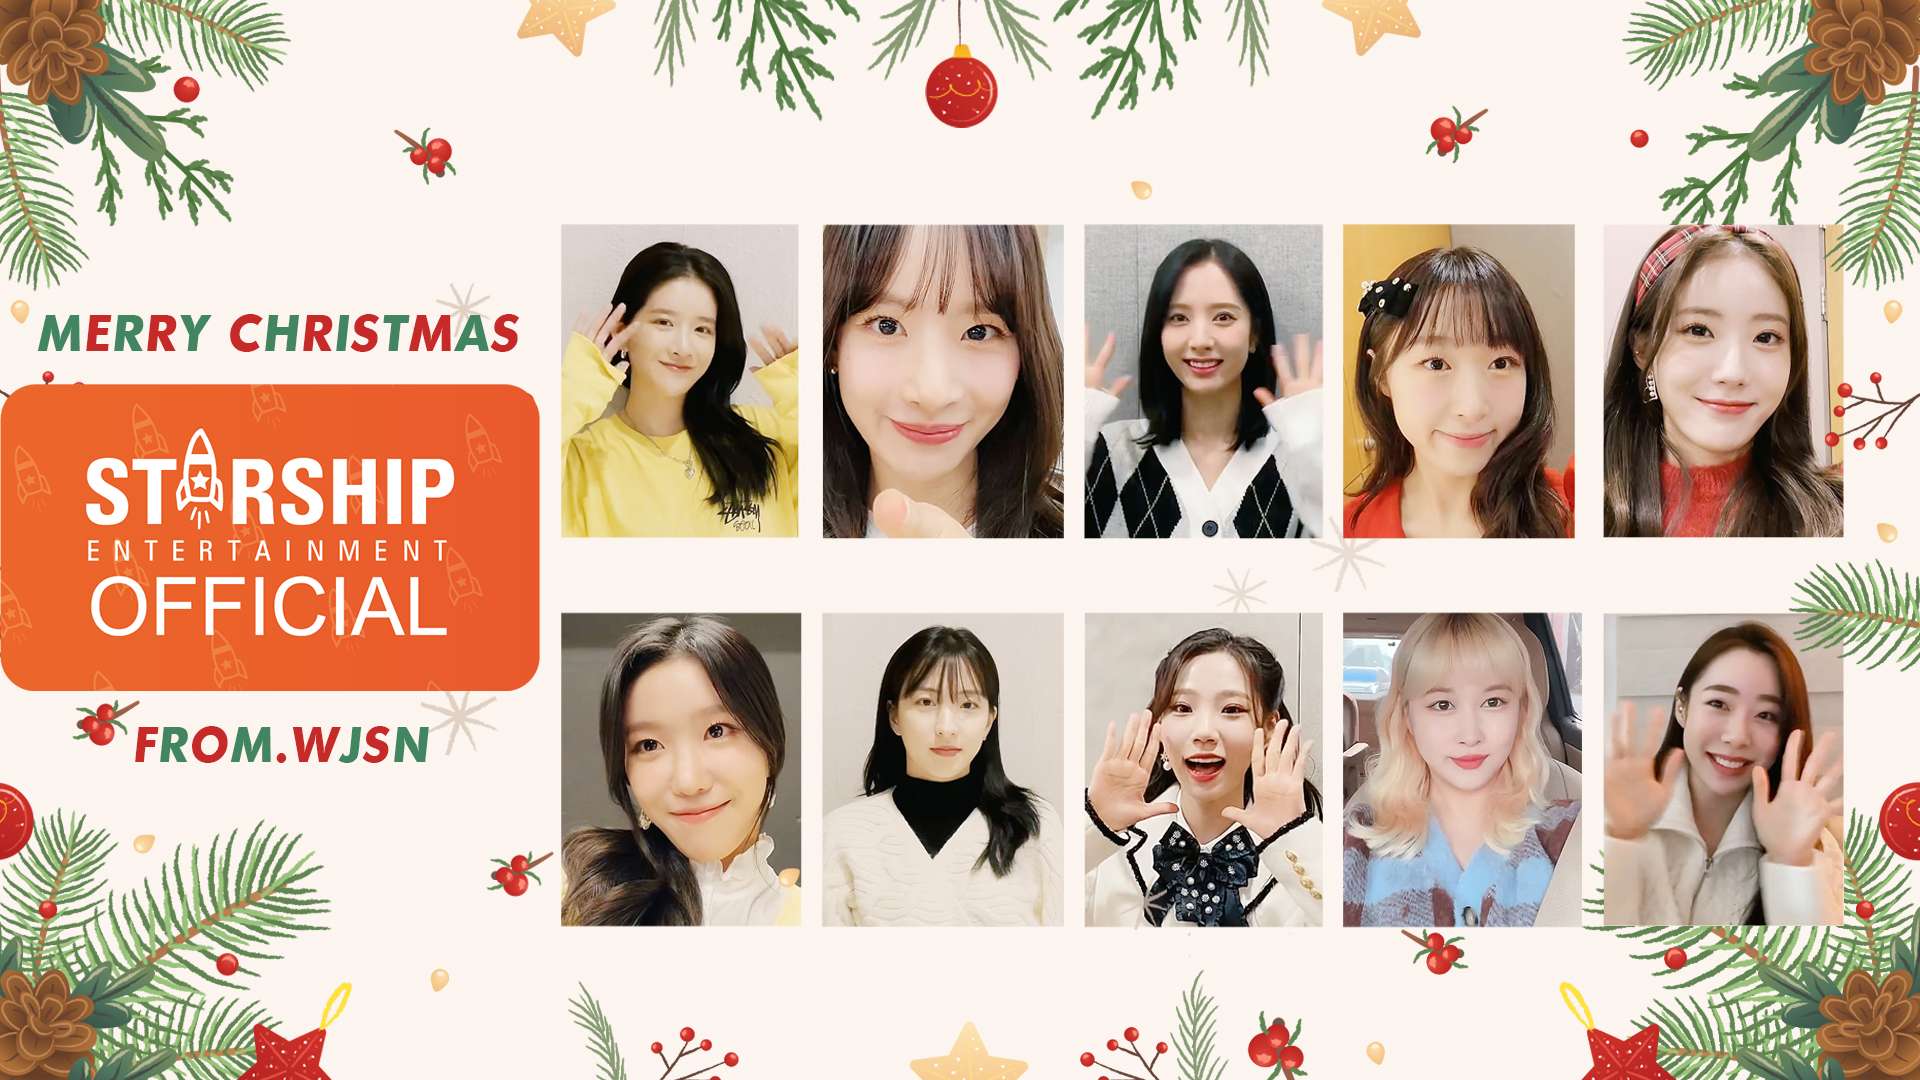 [Special Clip] 우주소녀(WJSN) - 2020 Christmas Message